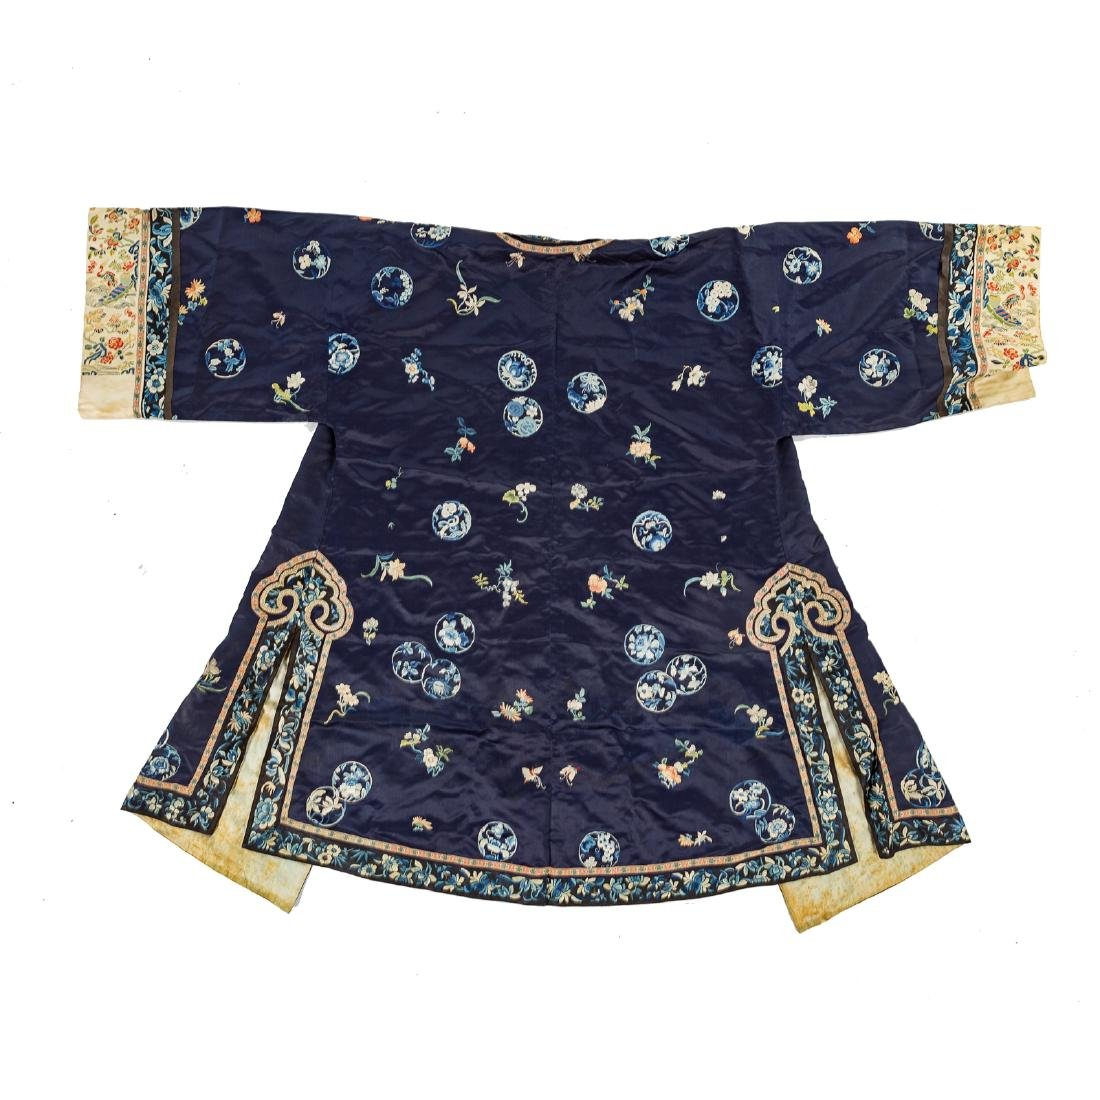 Chinese silk embroidered robe - 5